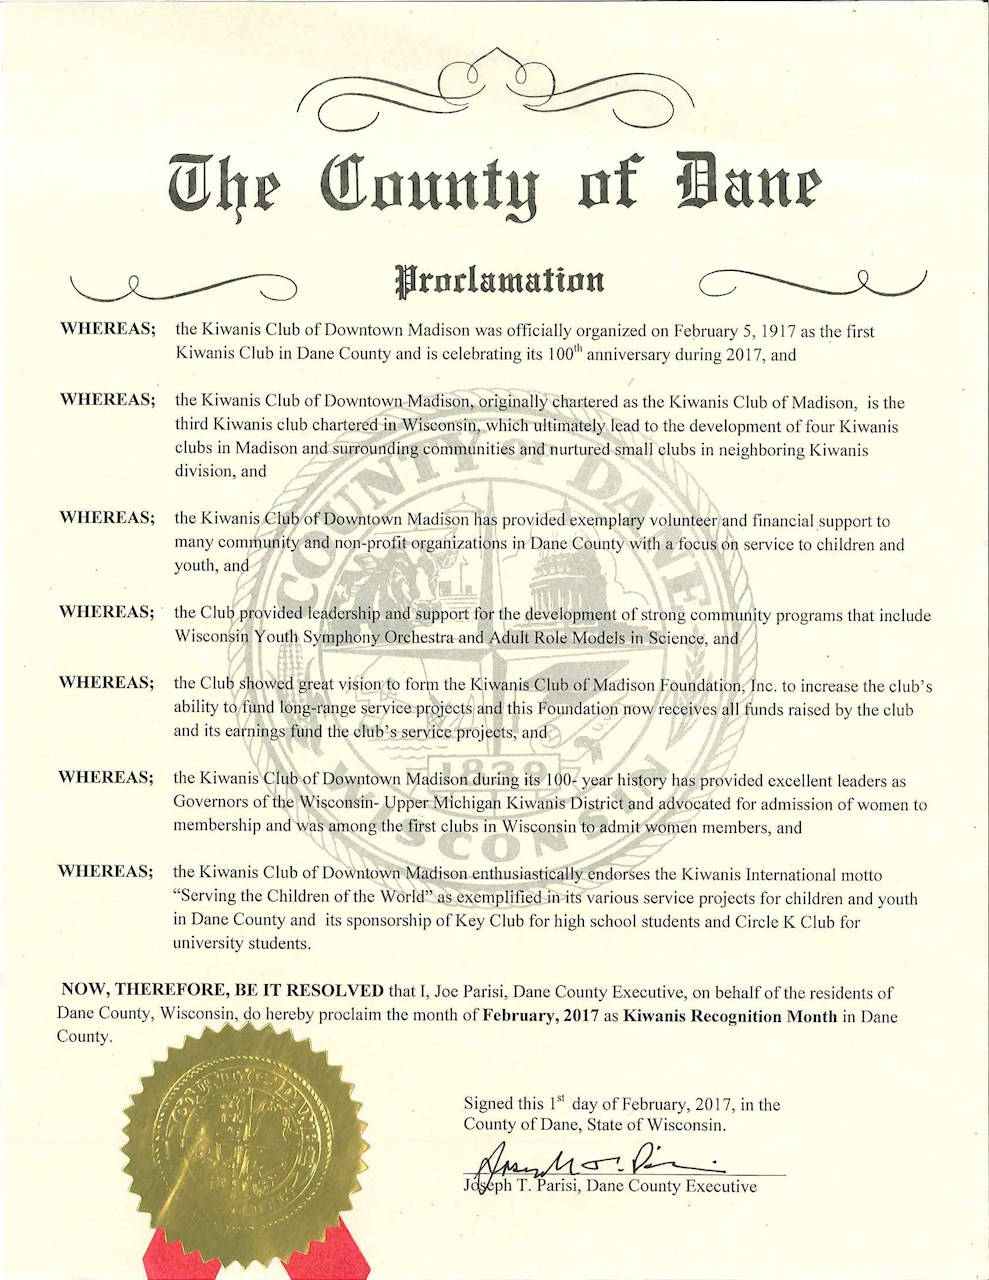 County Executive's Proclamation